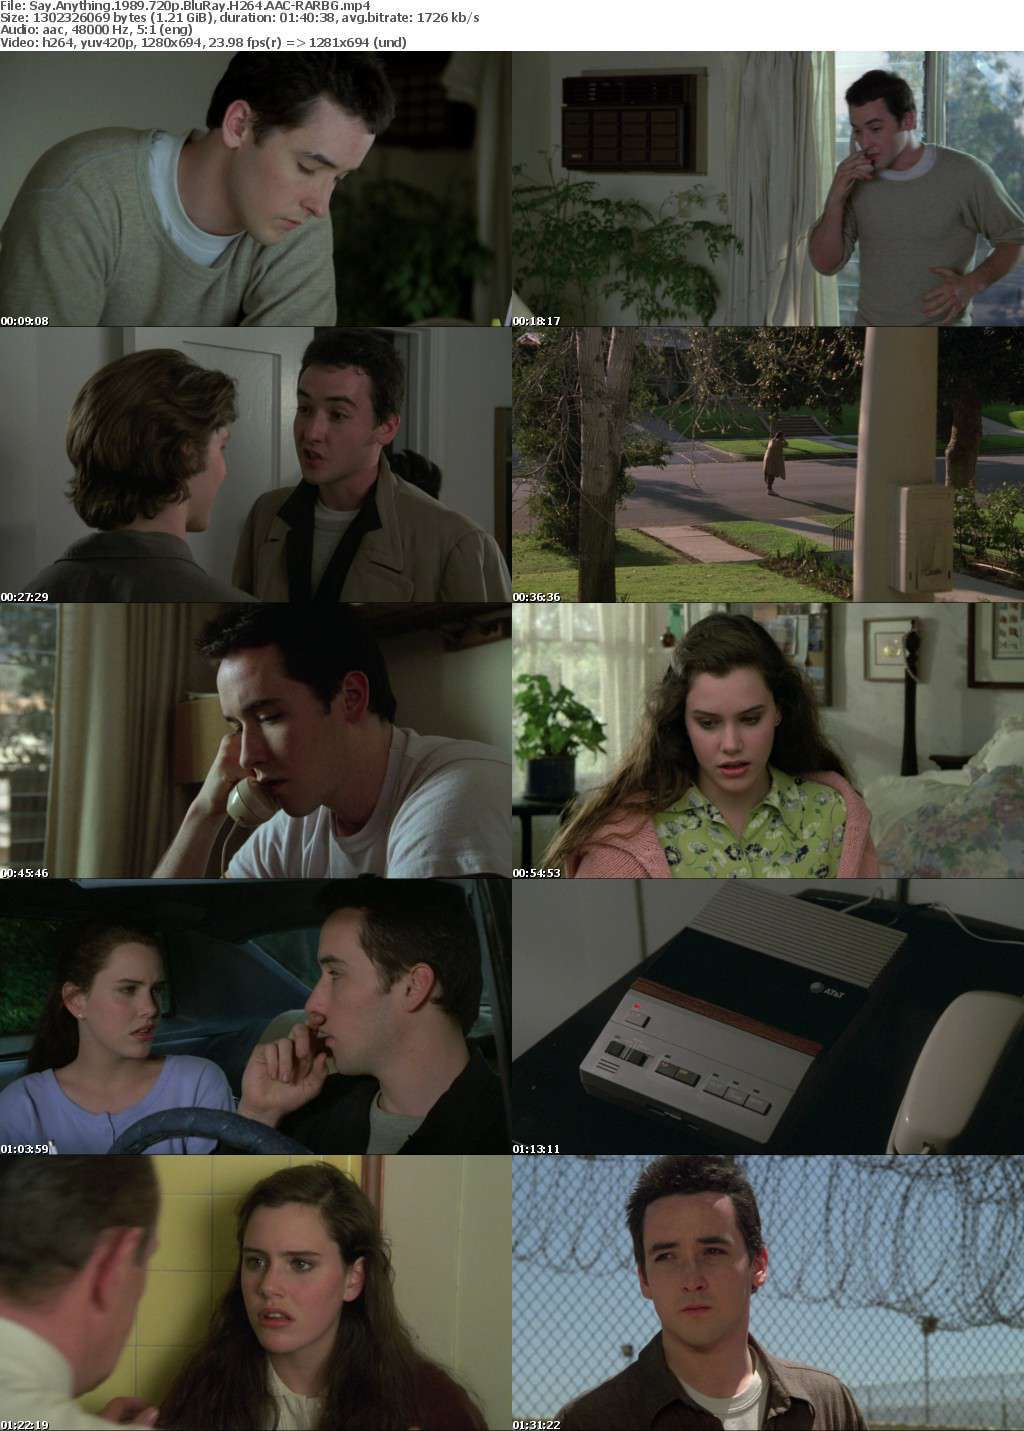 Say Anything 1989 720p BluRay H264 AAC-RARBG